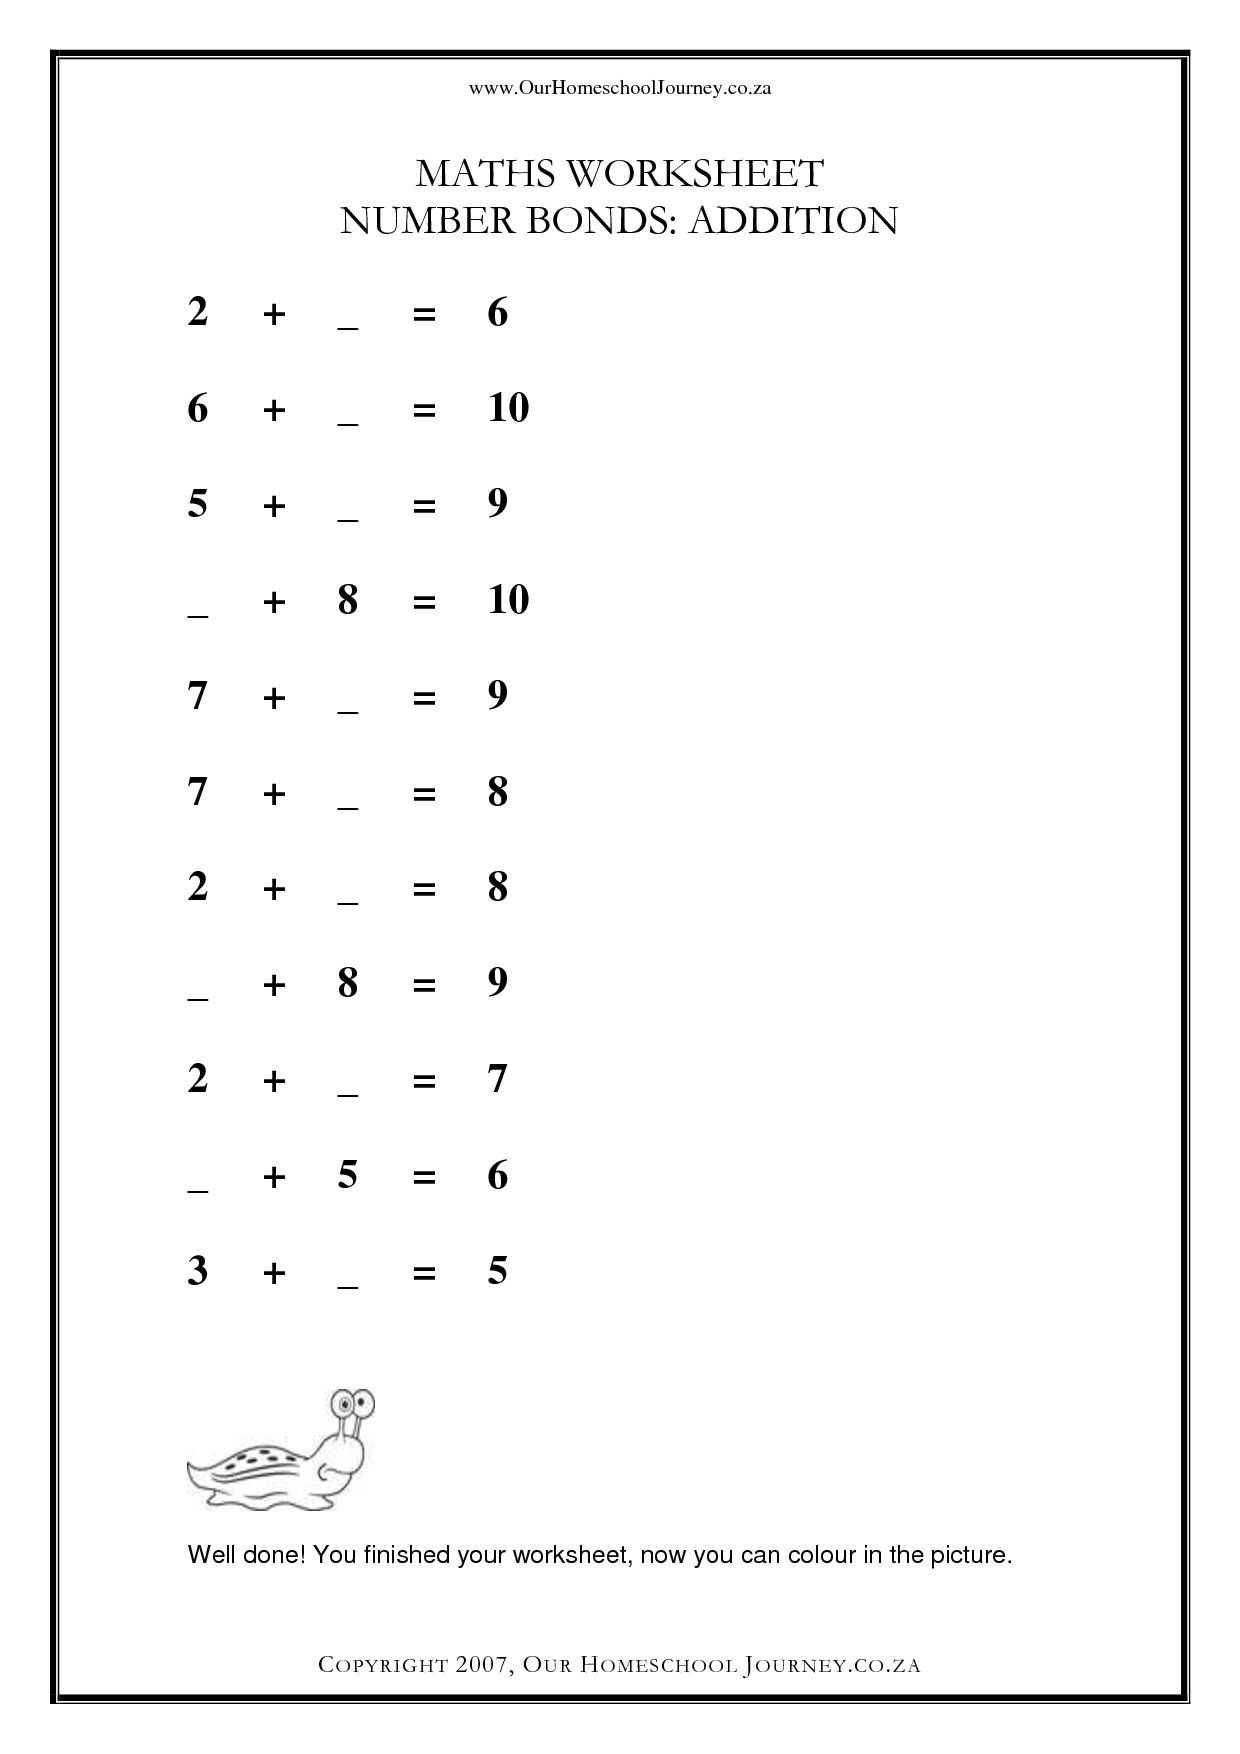 33 Innovative Number Bonds Worksheets Design With Images